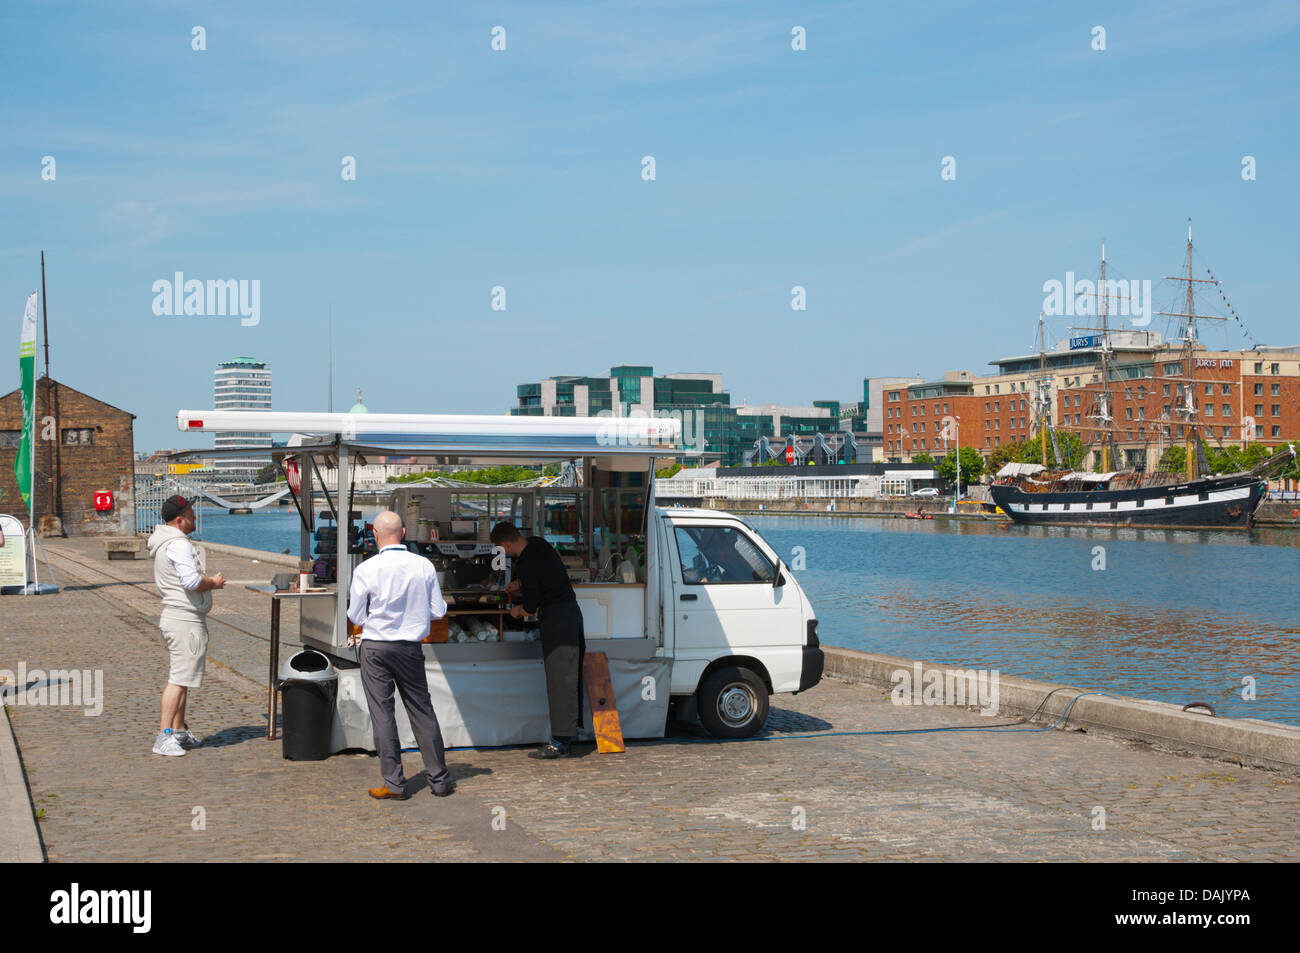 Coffee and snack stall City Quay in Docklands former harbour area by River Liffey central Dublin Ireland Europe - Stock Image